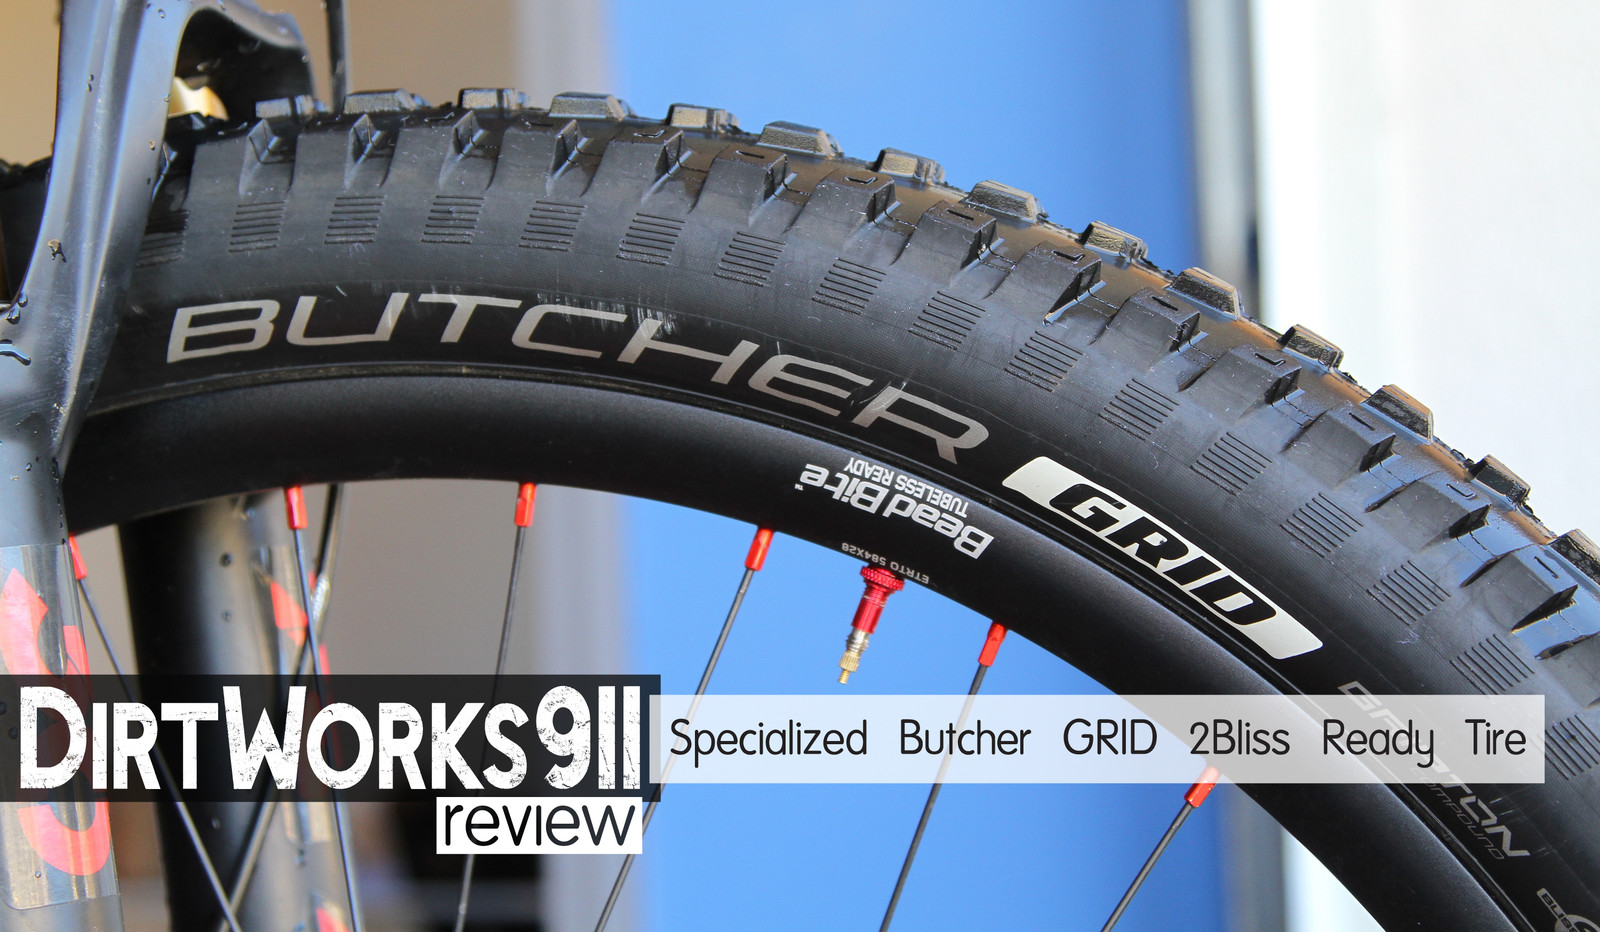 Specialized Butcher Grid 2bliss Ready Tire Reviews Comparisons